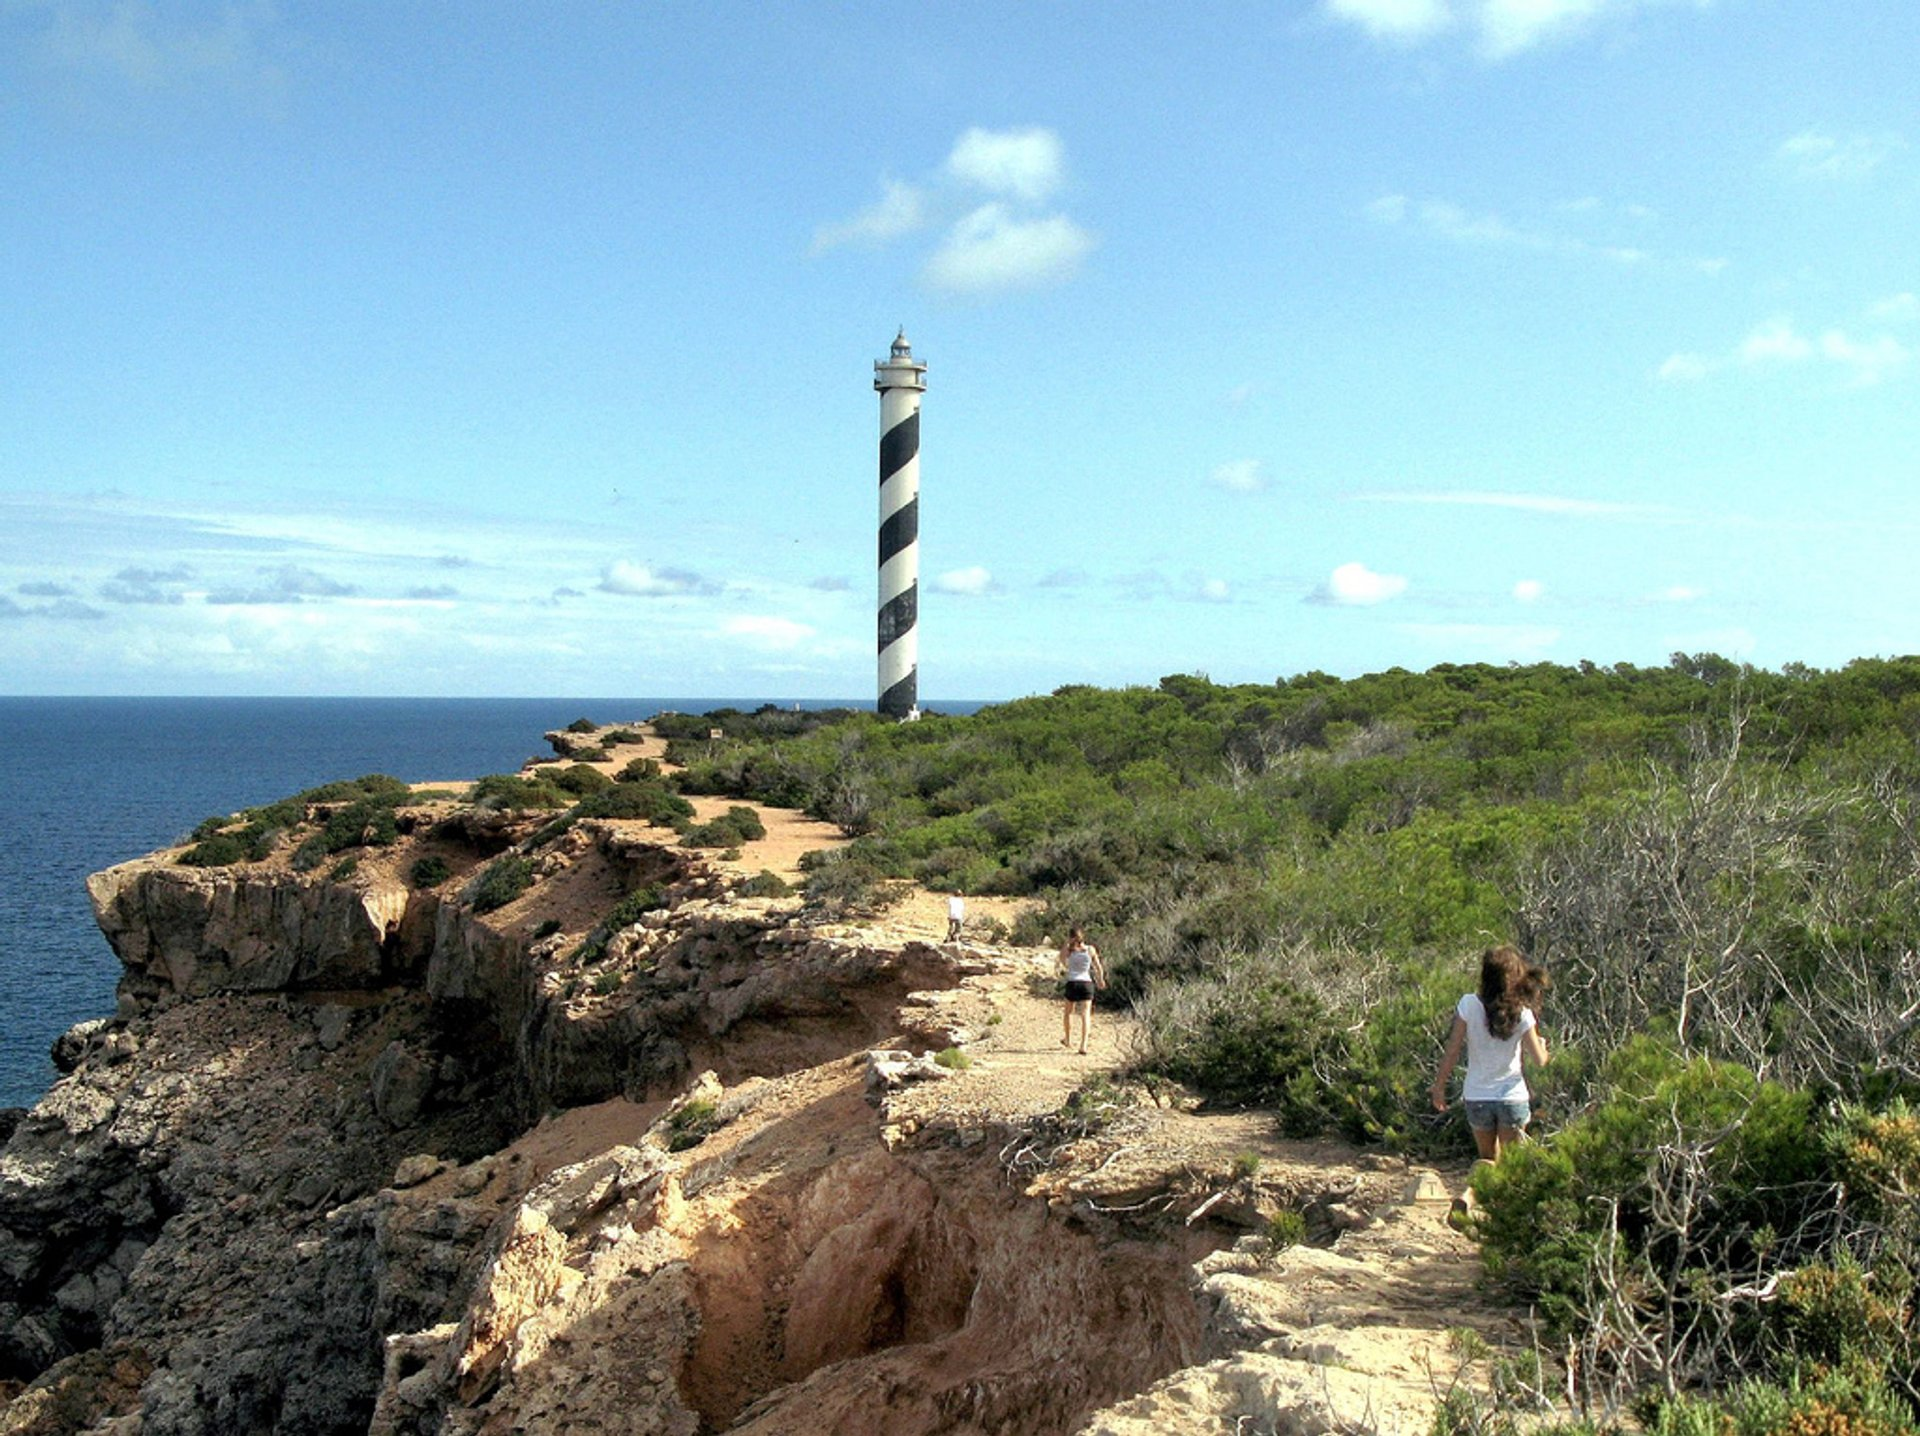 Hiking to the Punta Moscarter Lighthouse, near Portinatx on the northern coast of Ibiza 2020